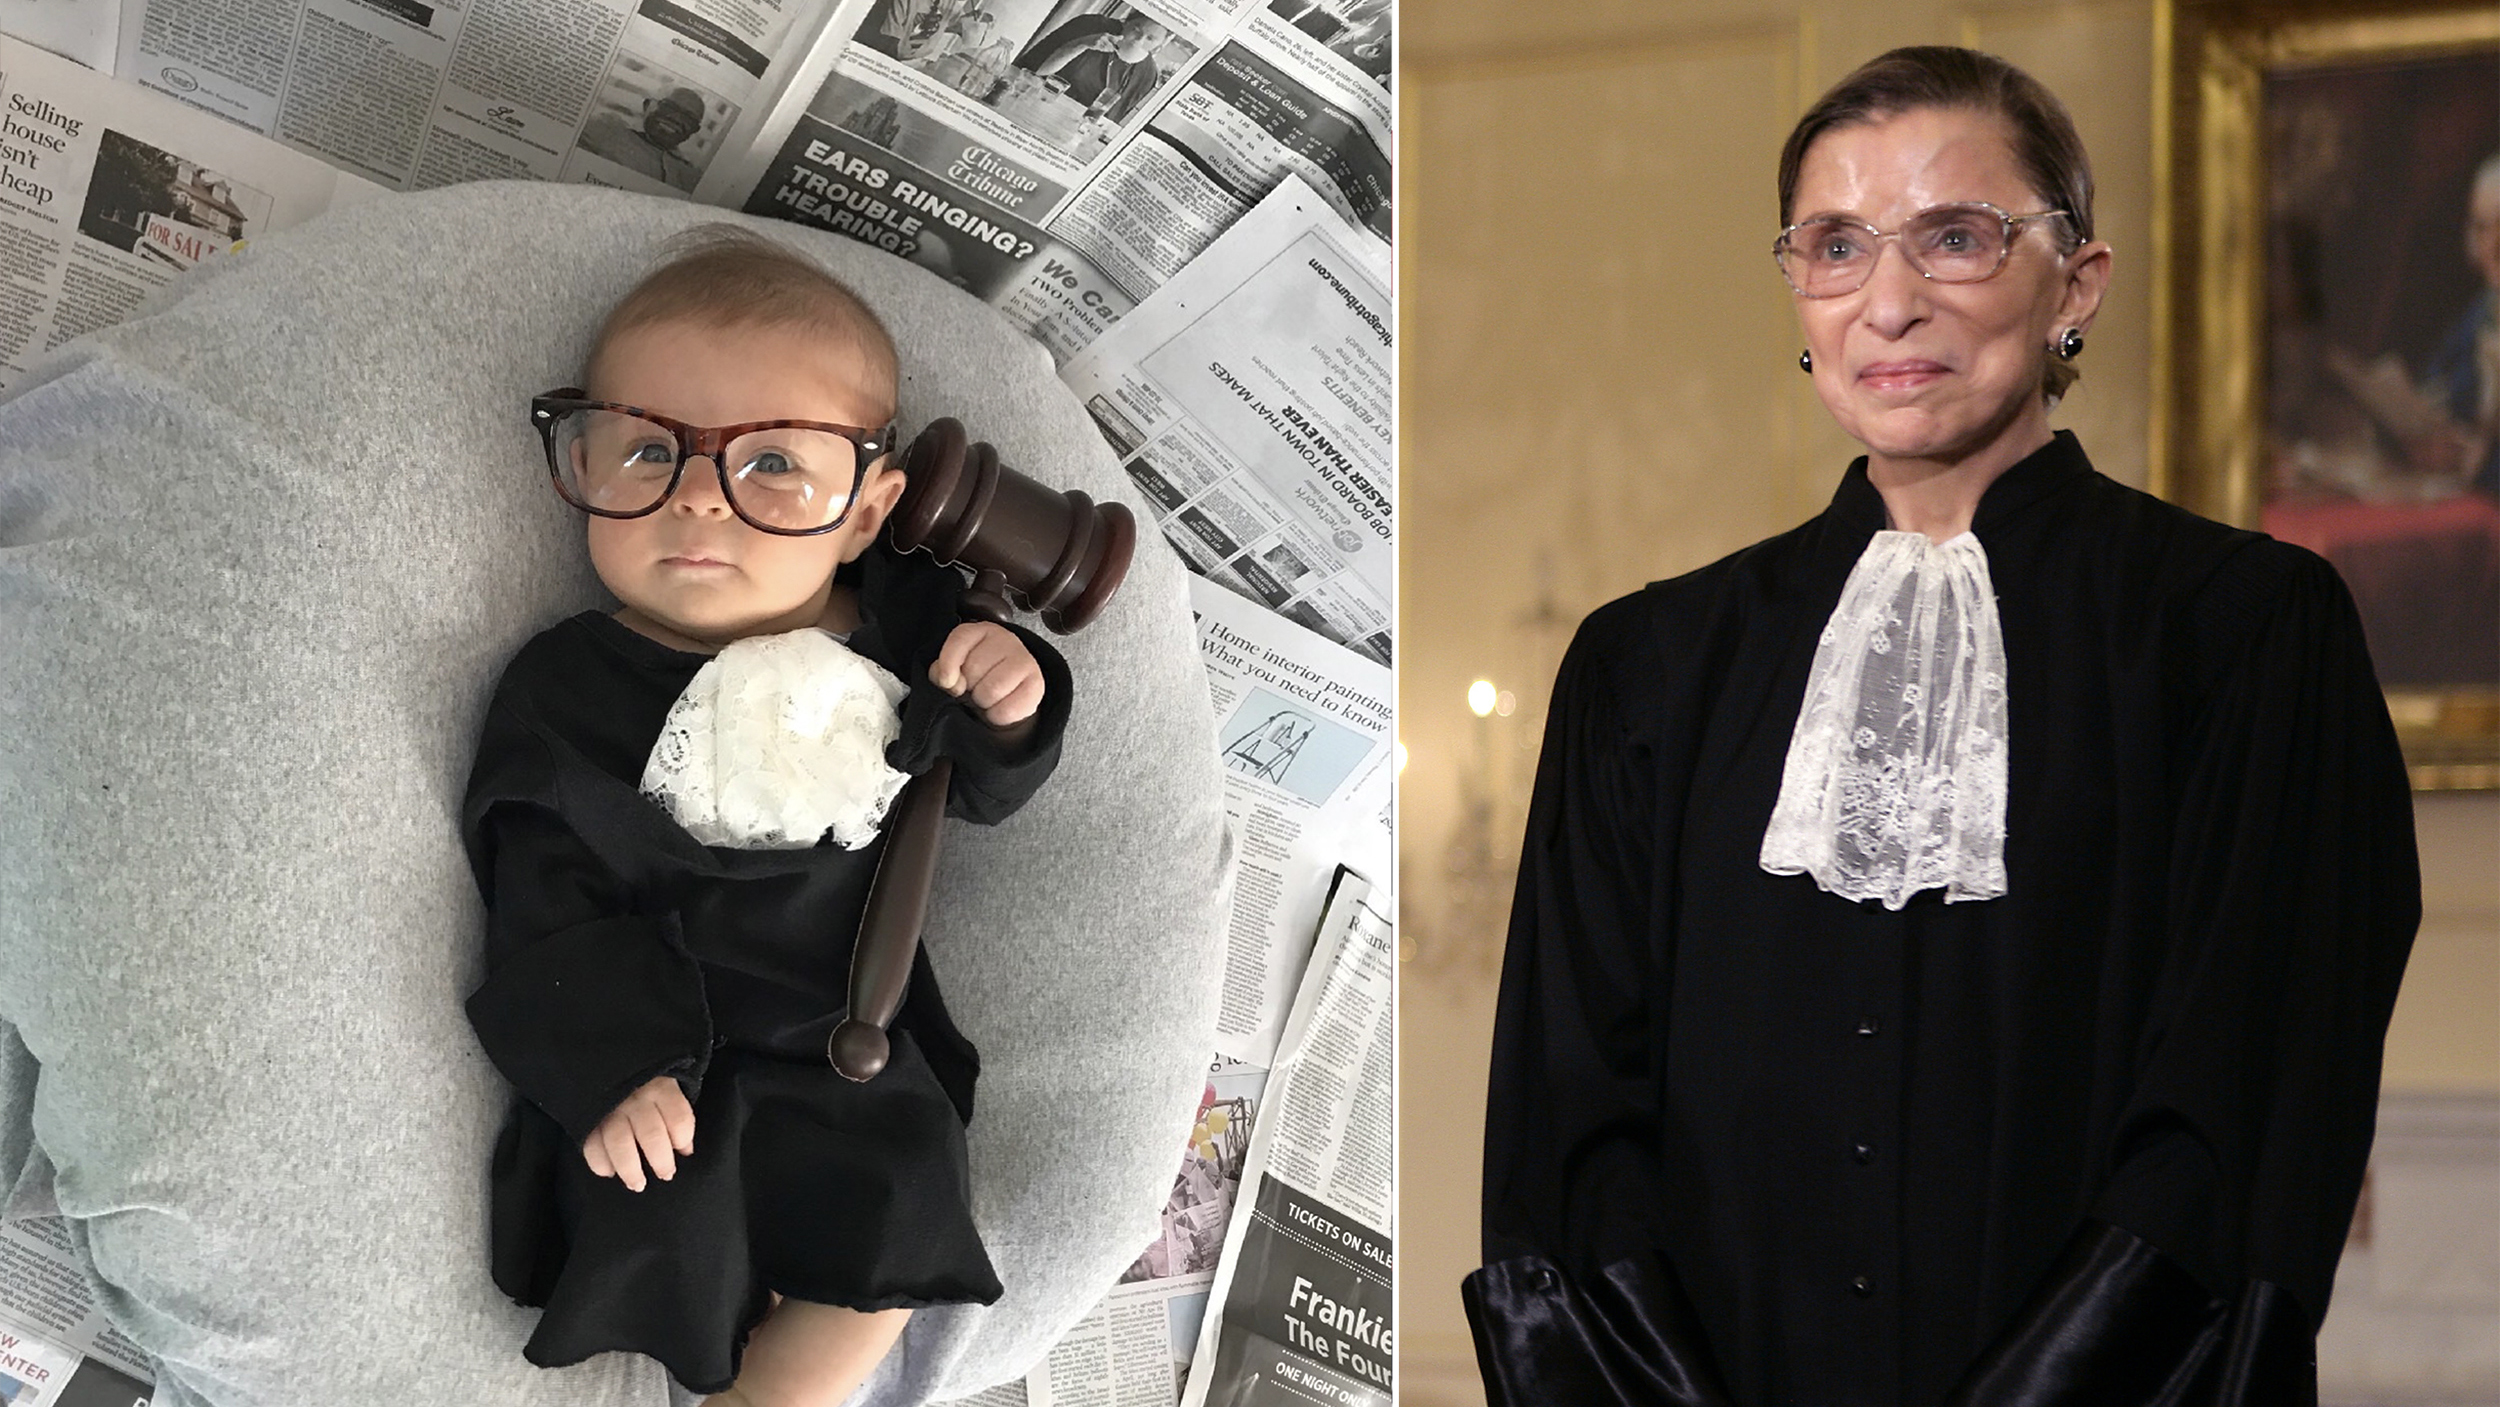 227fb09bc Mom dresses baby as famous women like Madonna and Malala